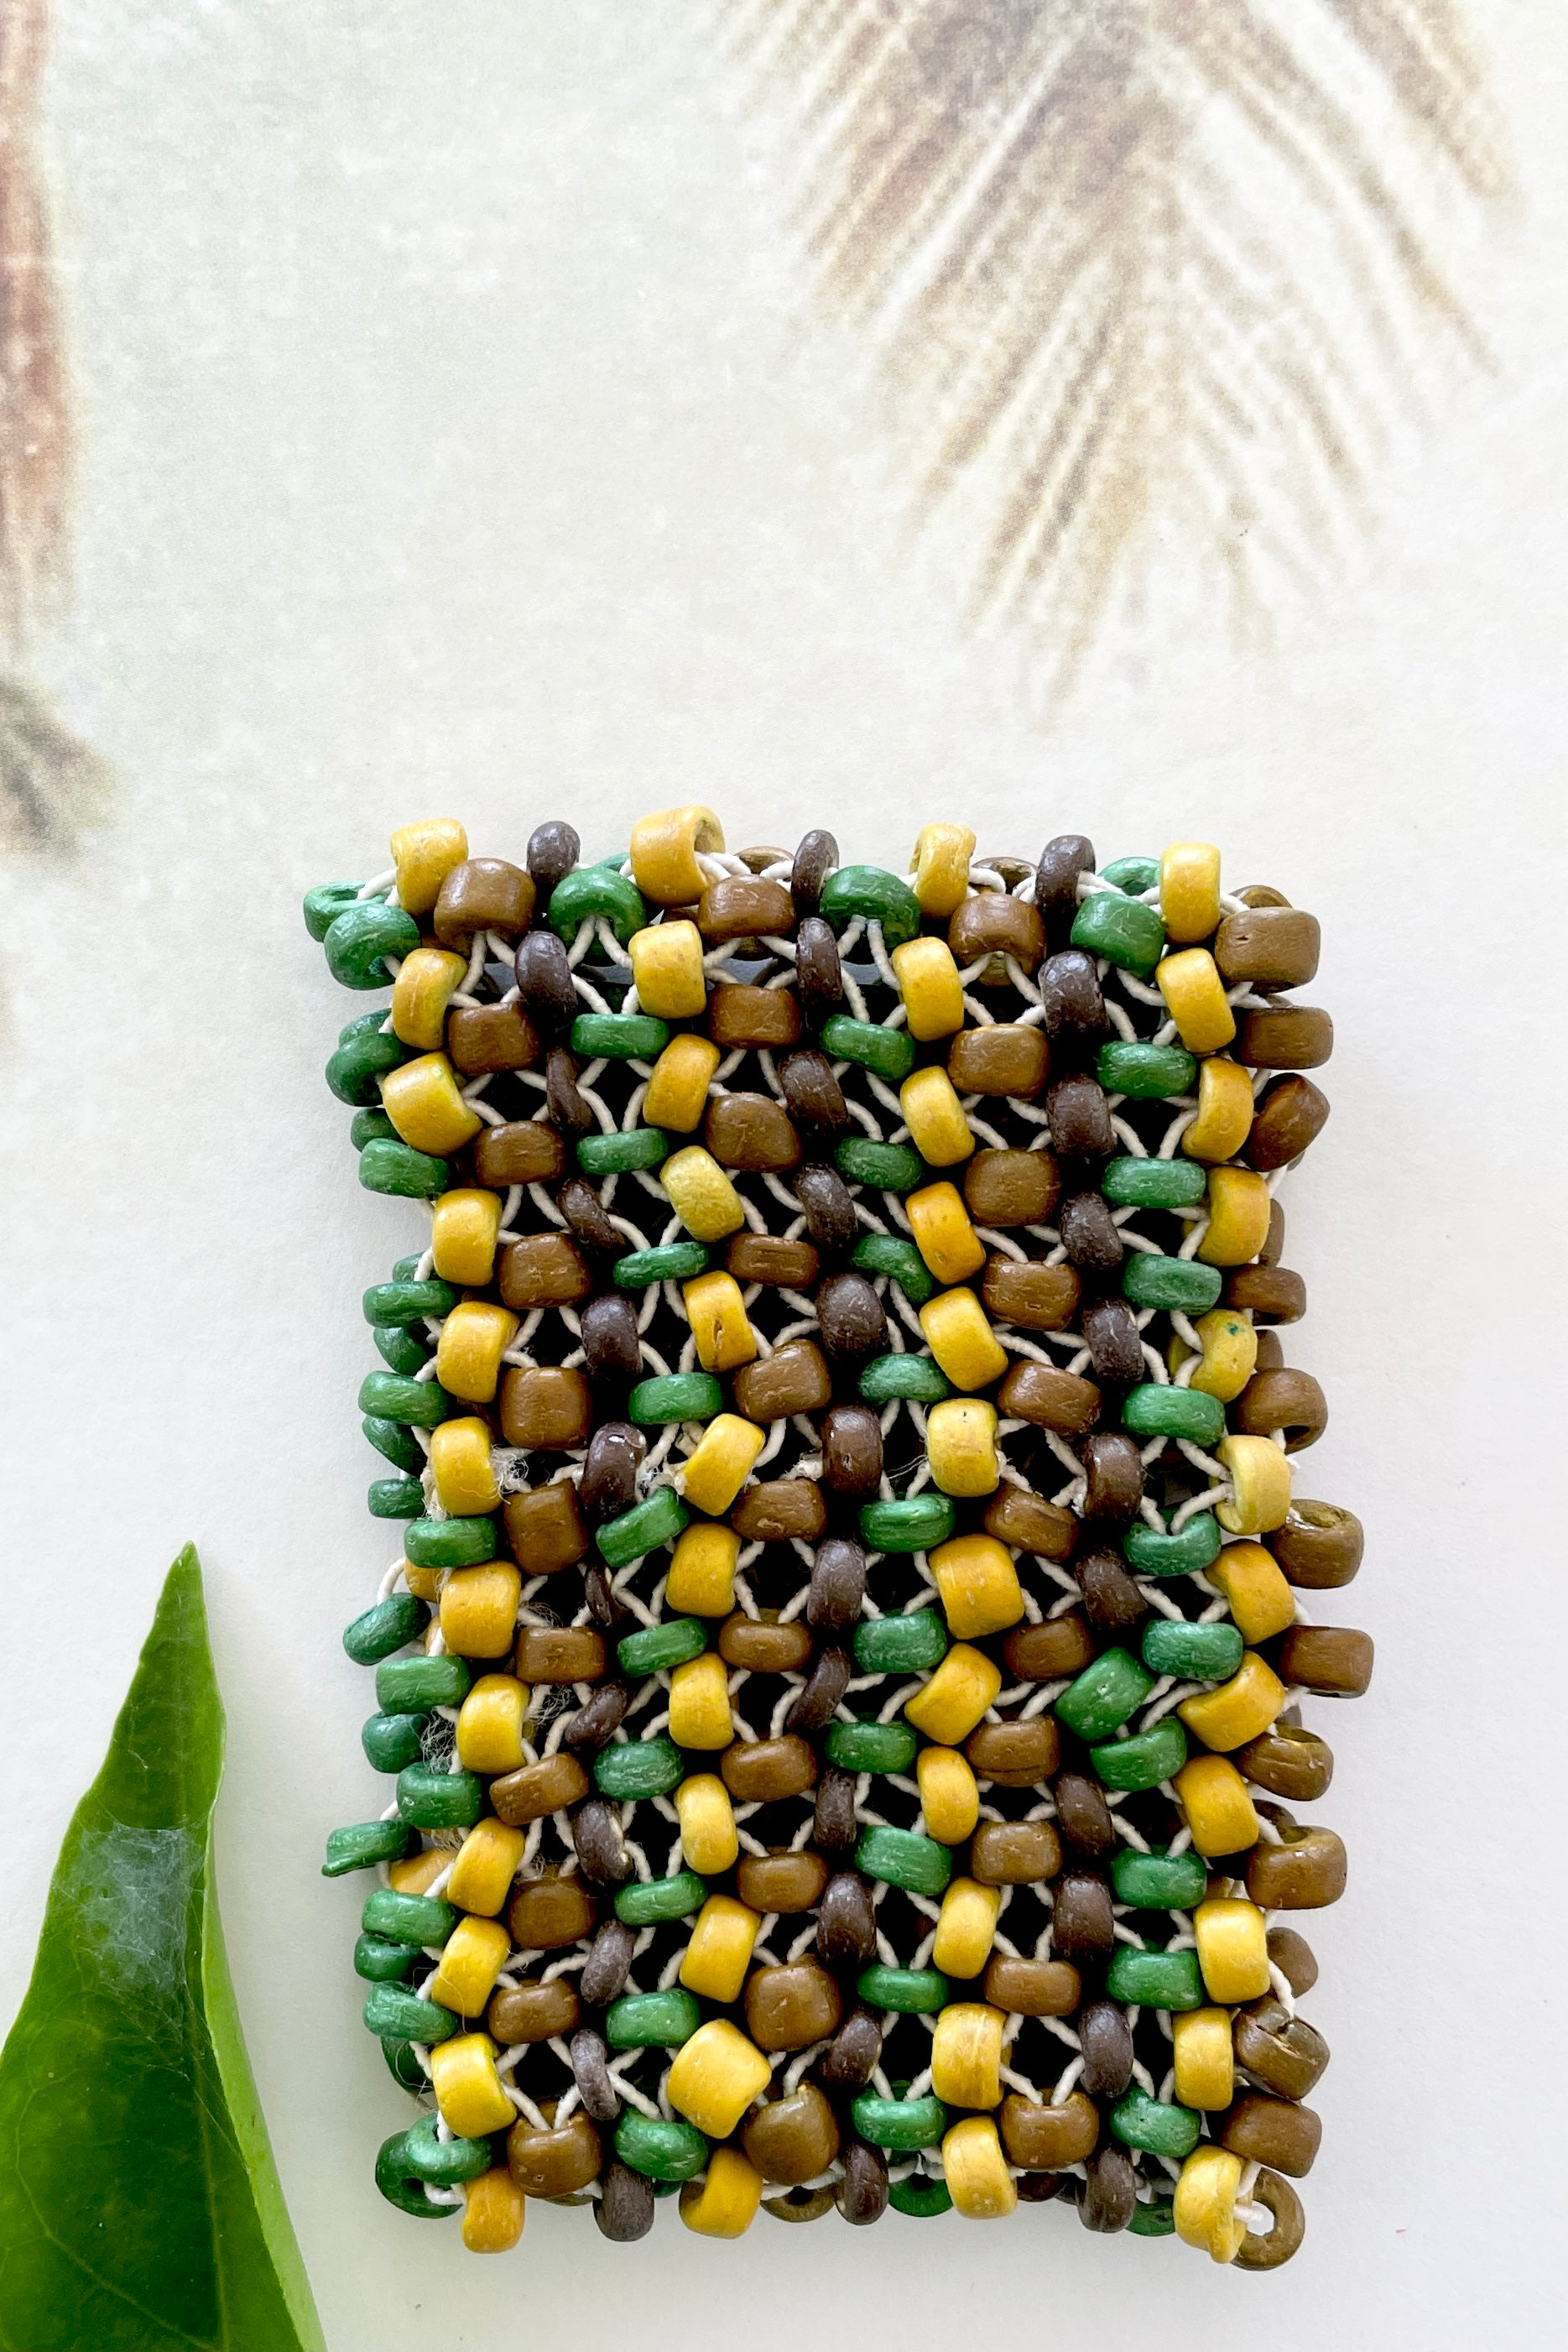 Simple and soft, a woodland style with hand cut wood beads in shades of green.